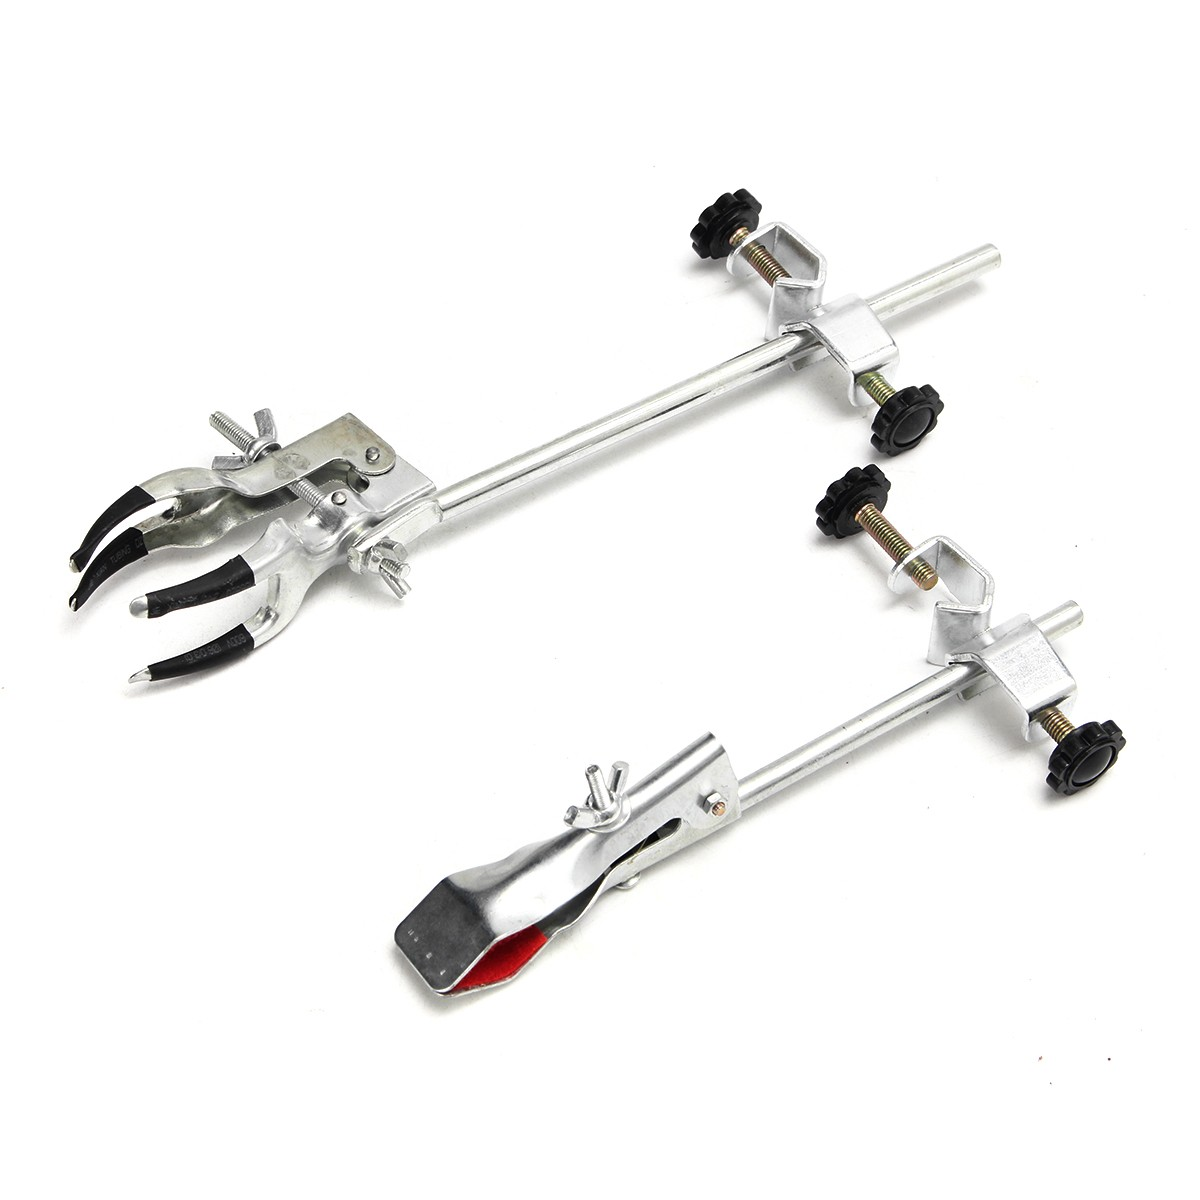 Laboratory Stands Support Lab Clamp Flask Clamp Condenser Clamp Stand Four Prong Extension Flask Clamp